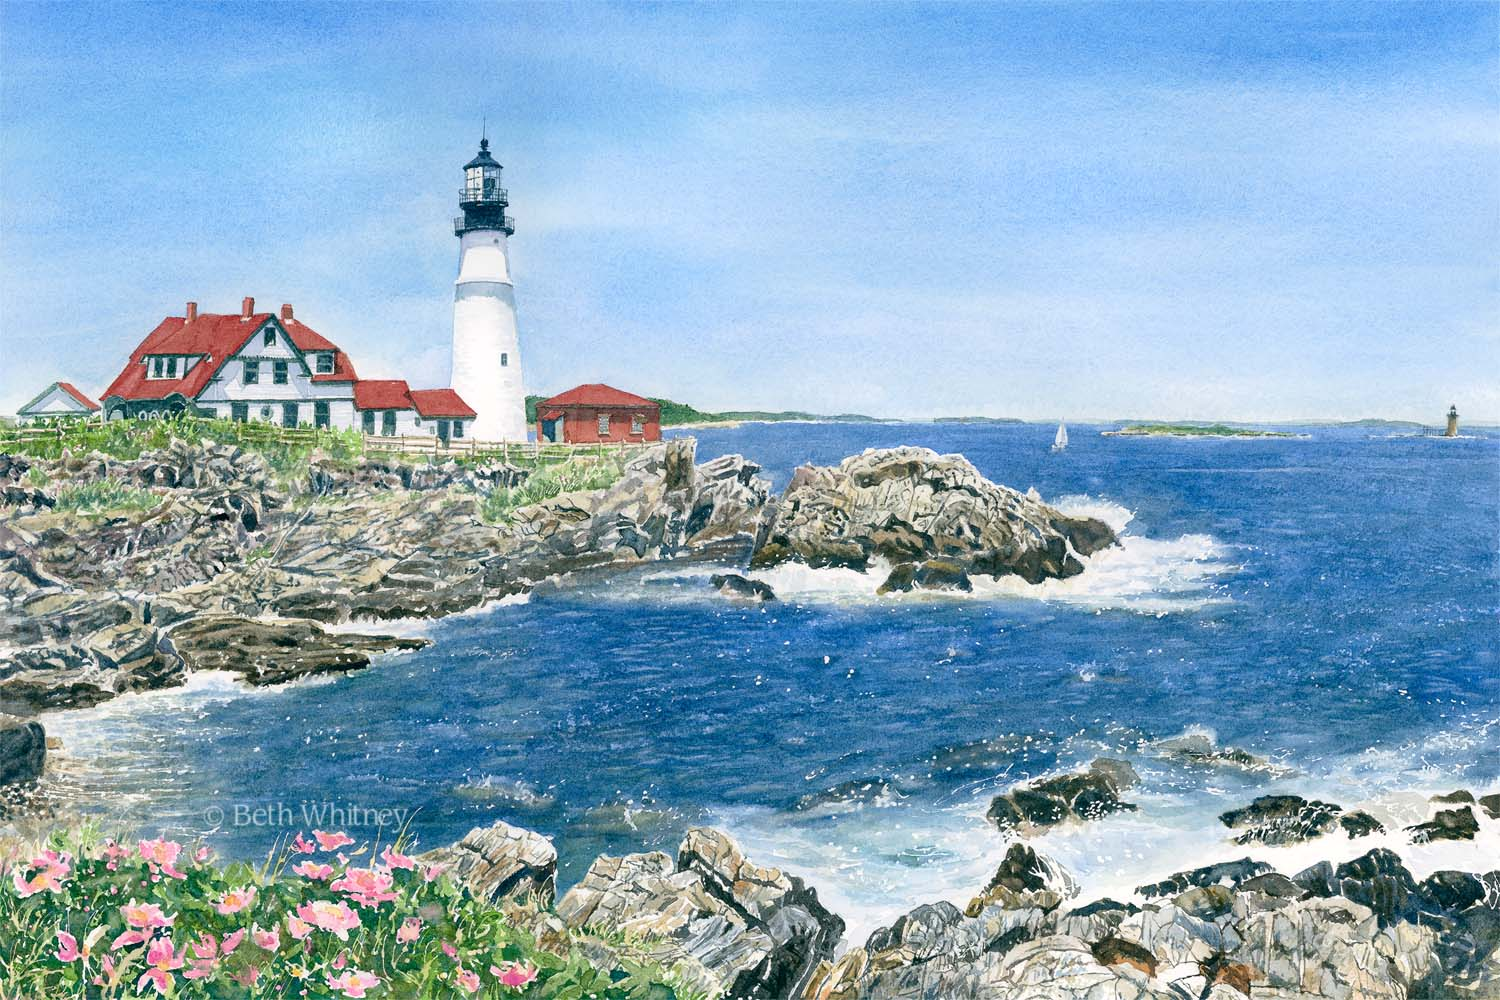 Watercolor painting of Portland Head Lighthouse and ocean surf by Beth Whitney